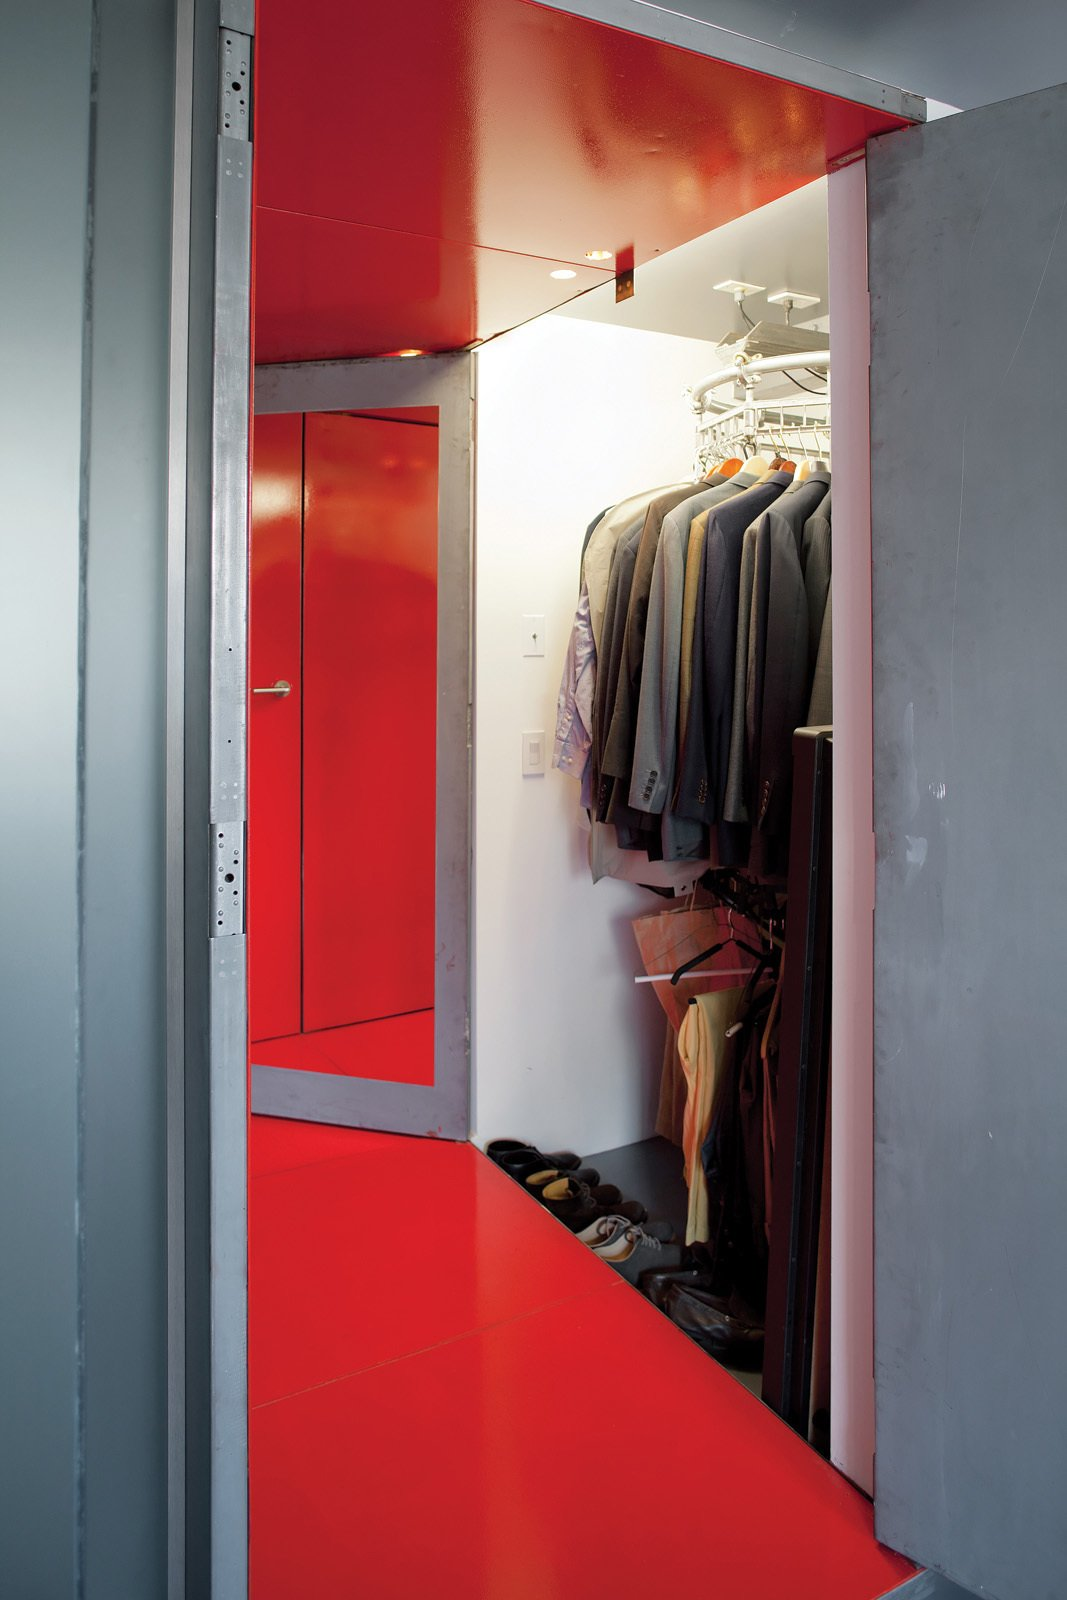 """Fontanez solved LOT-EK's conundrum of how to situate the bed against the center wall while still maintaining closet access by suggesting an automated dry-cleaning rack in the narrow closet. He and Russell access the closet from opposite ends. """"We just have to make sure we don't spin it at the same time,"""" Fontanez says.  Don't miss a word of Dwell! Download our  FREE app from iTunes, friend us on Facebook, or follow us on Twitter!  Photo 10 of 10 in Tunnel Vision"""